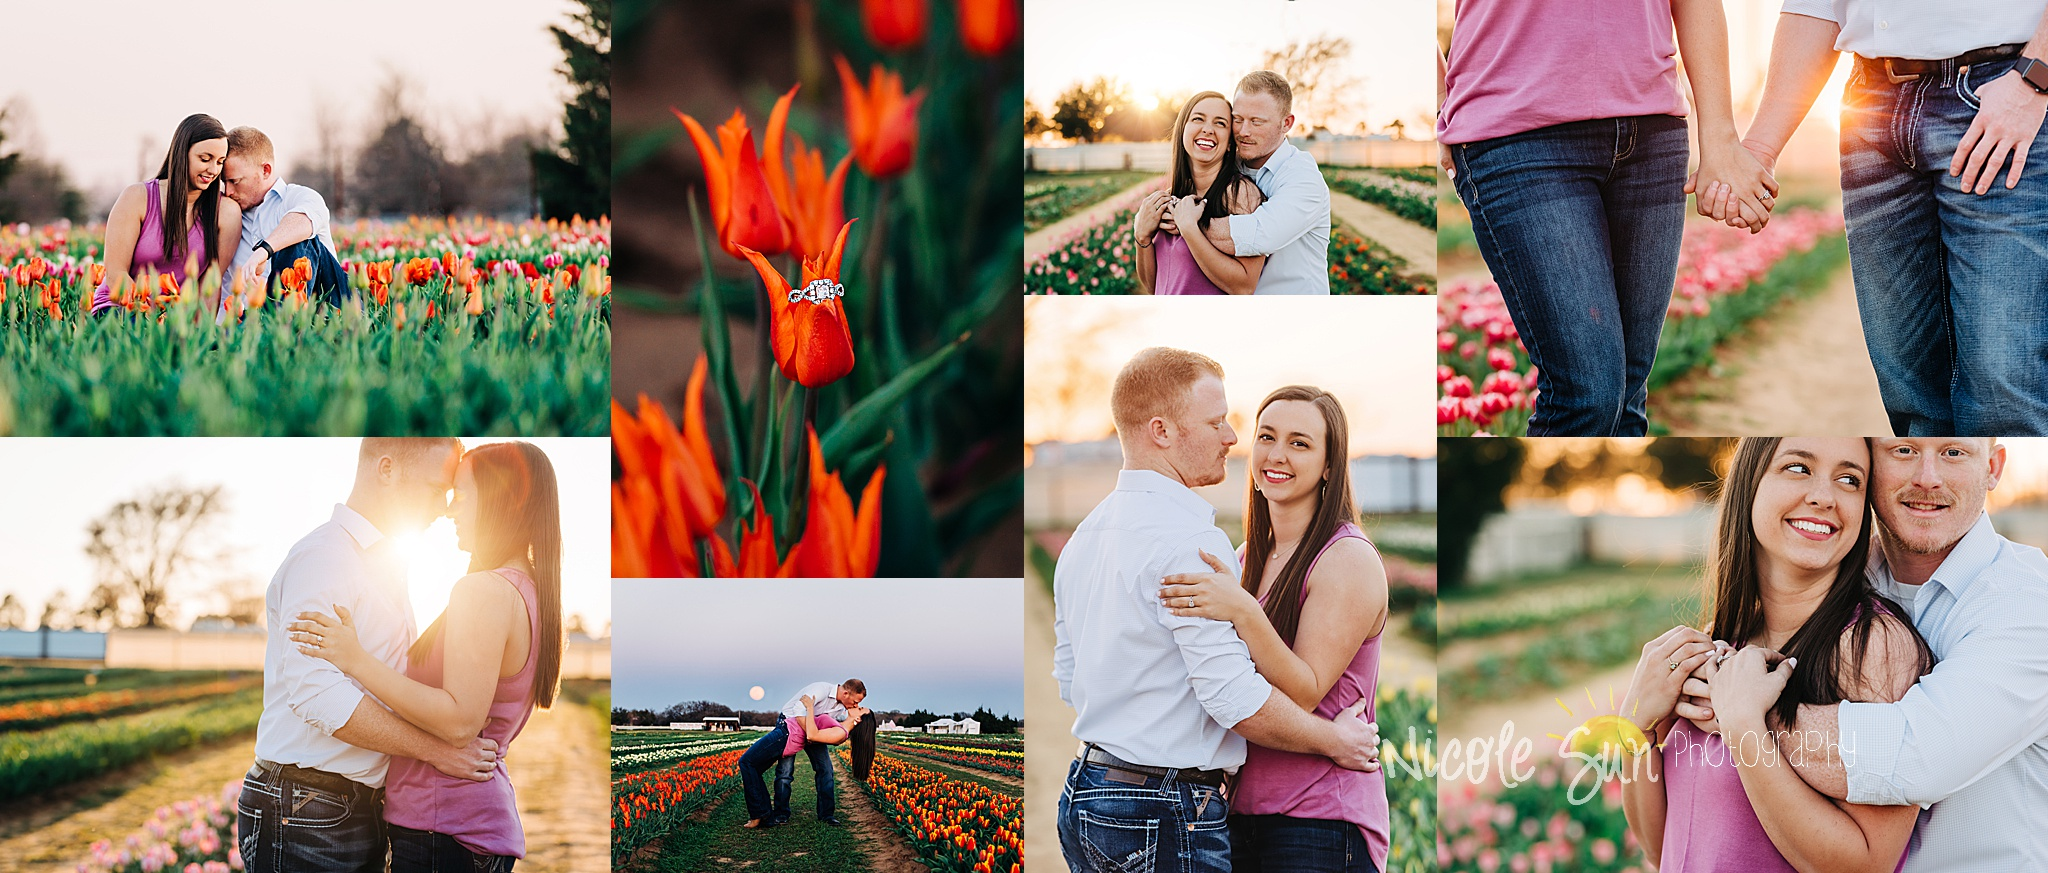 Engagement Session - Texas Tulips